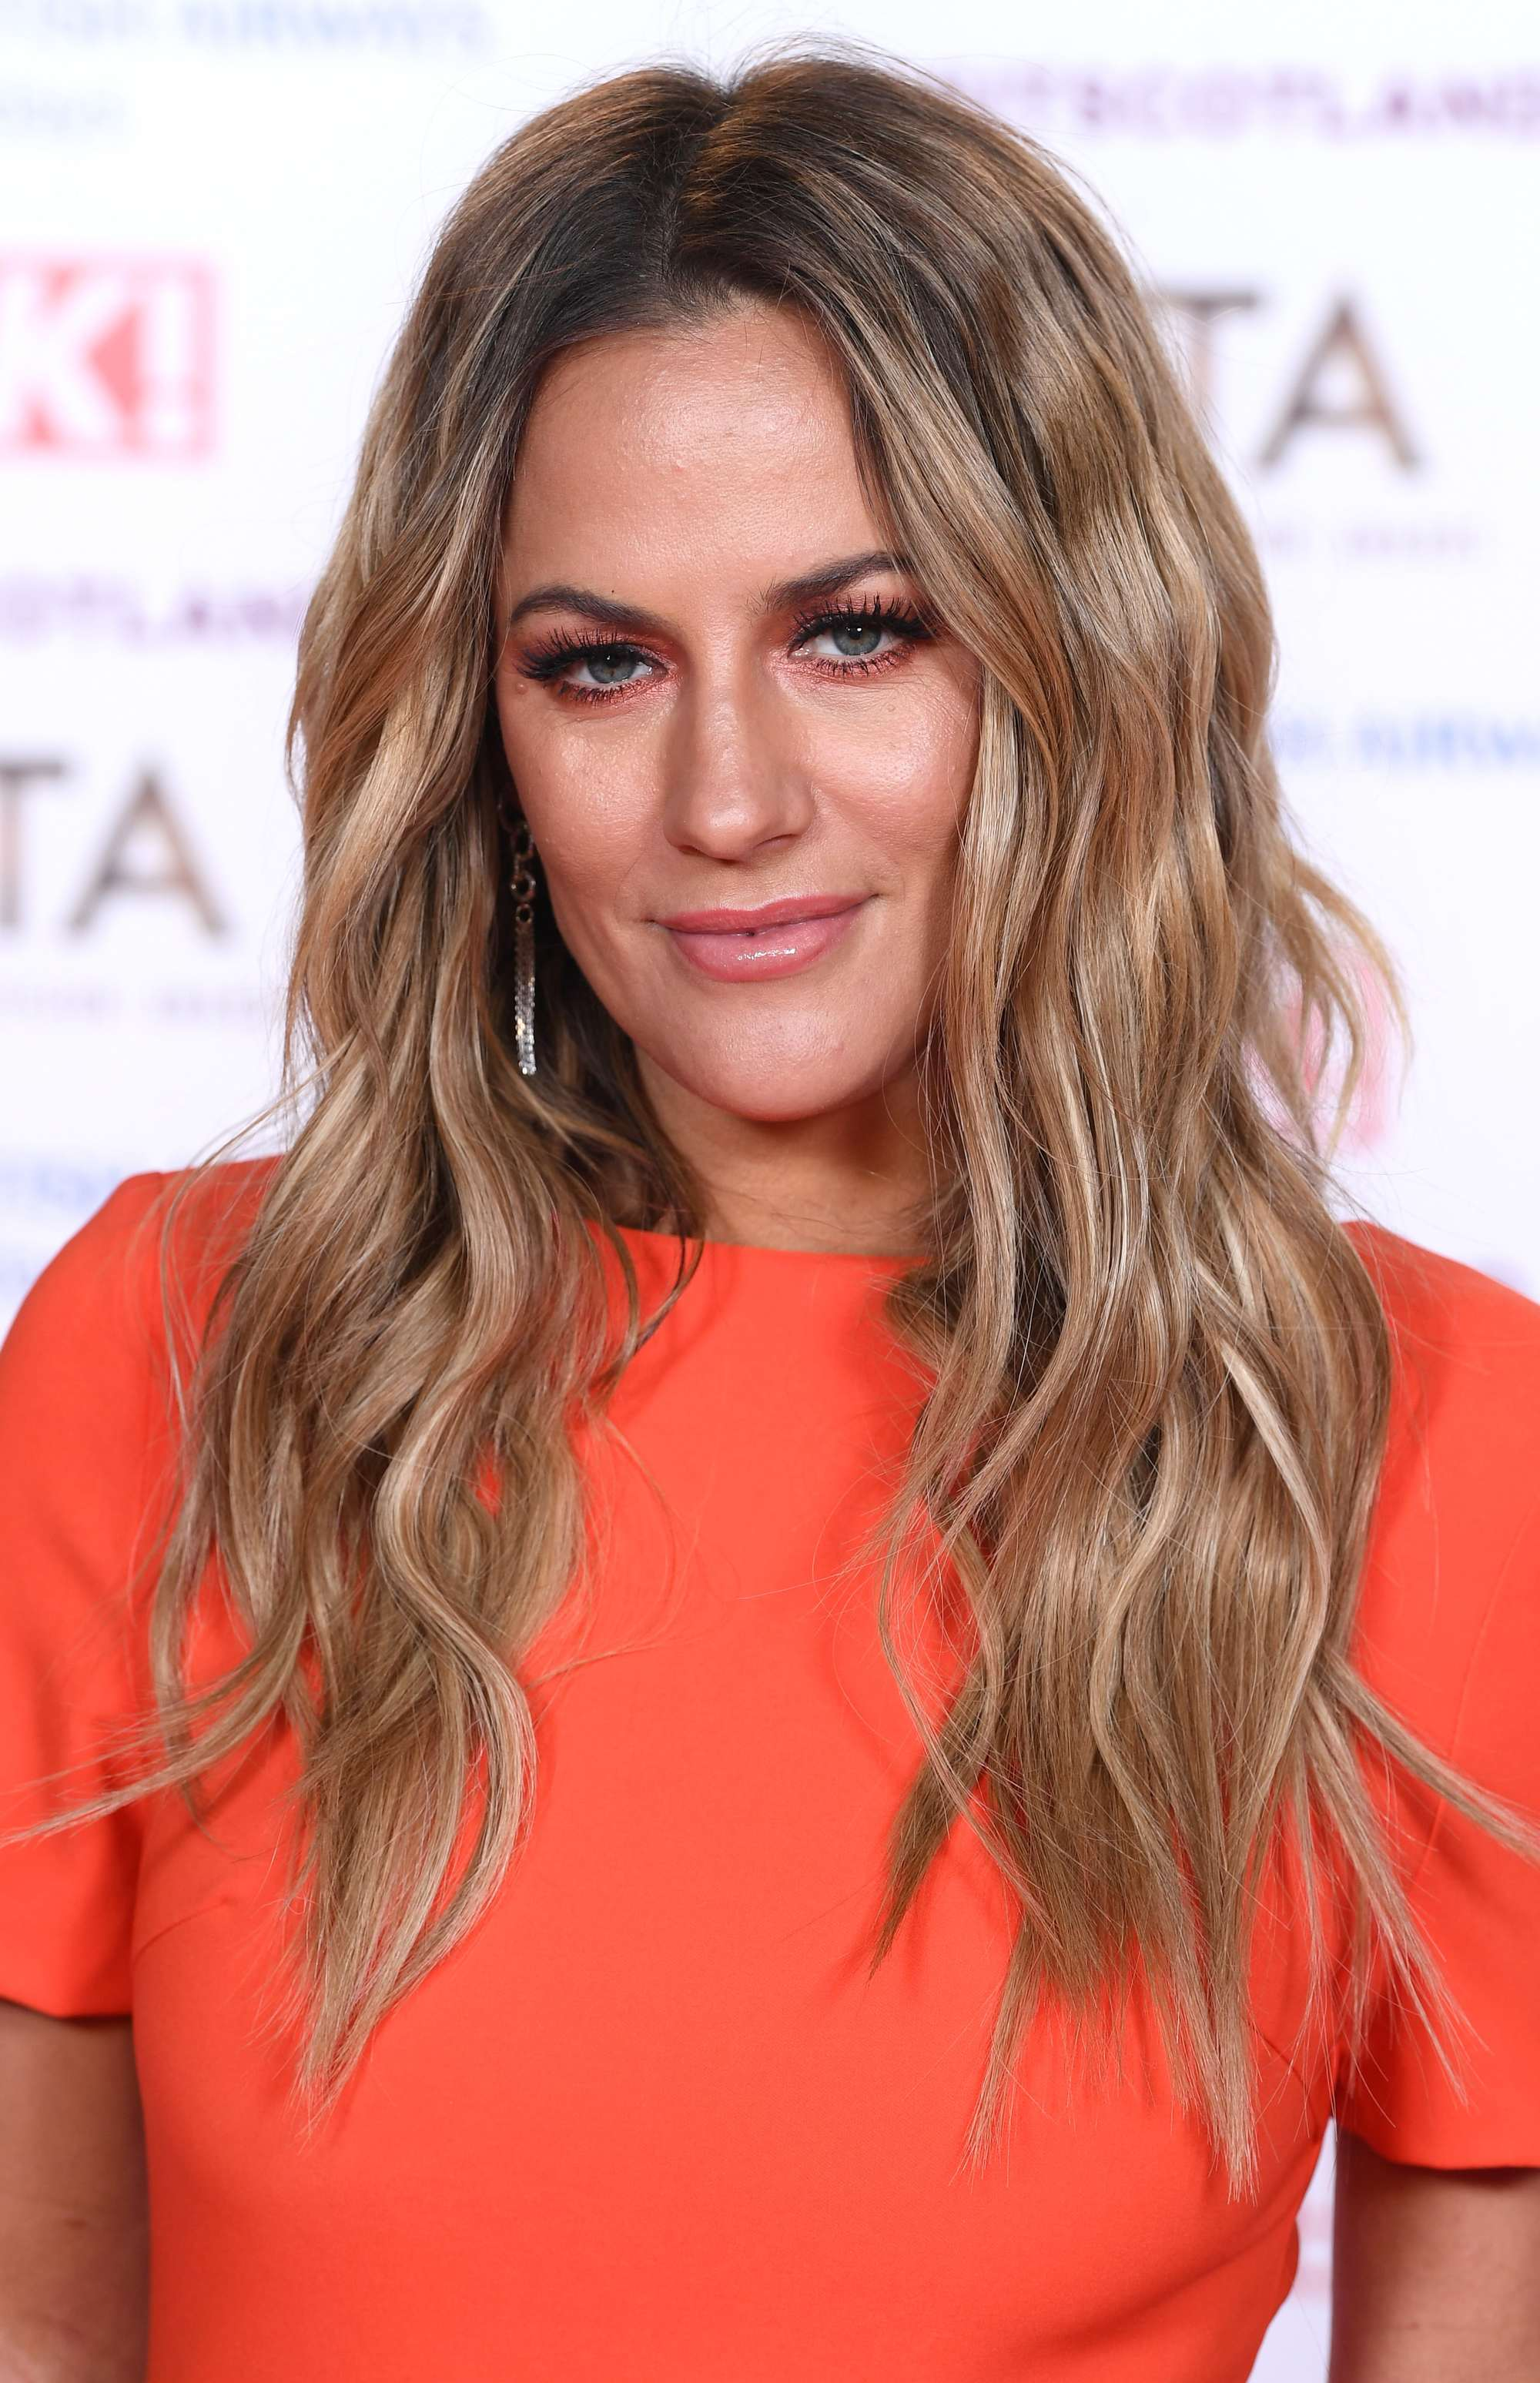 Brown hair with blonde highlights: Caroline Flack with long wavy brown hair with highlights, wearing an orange dress